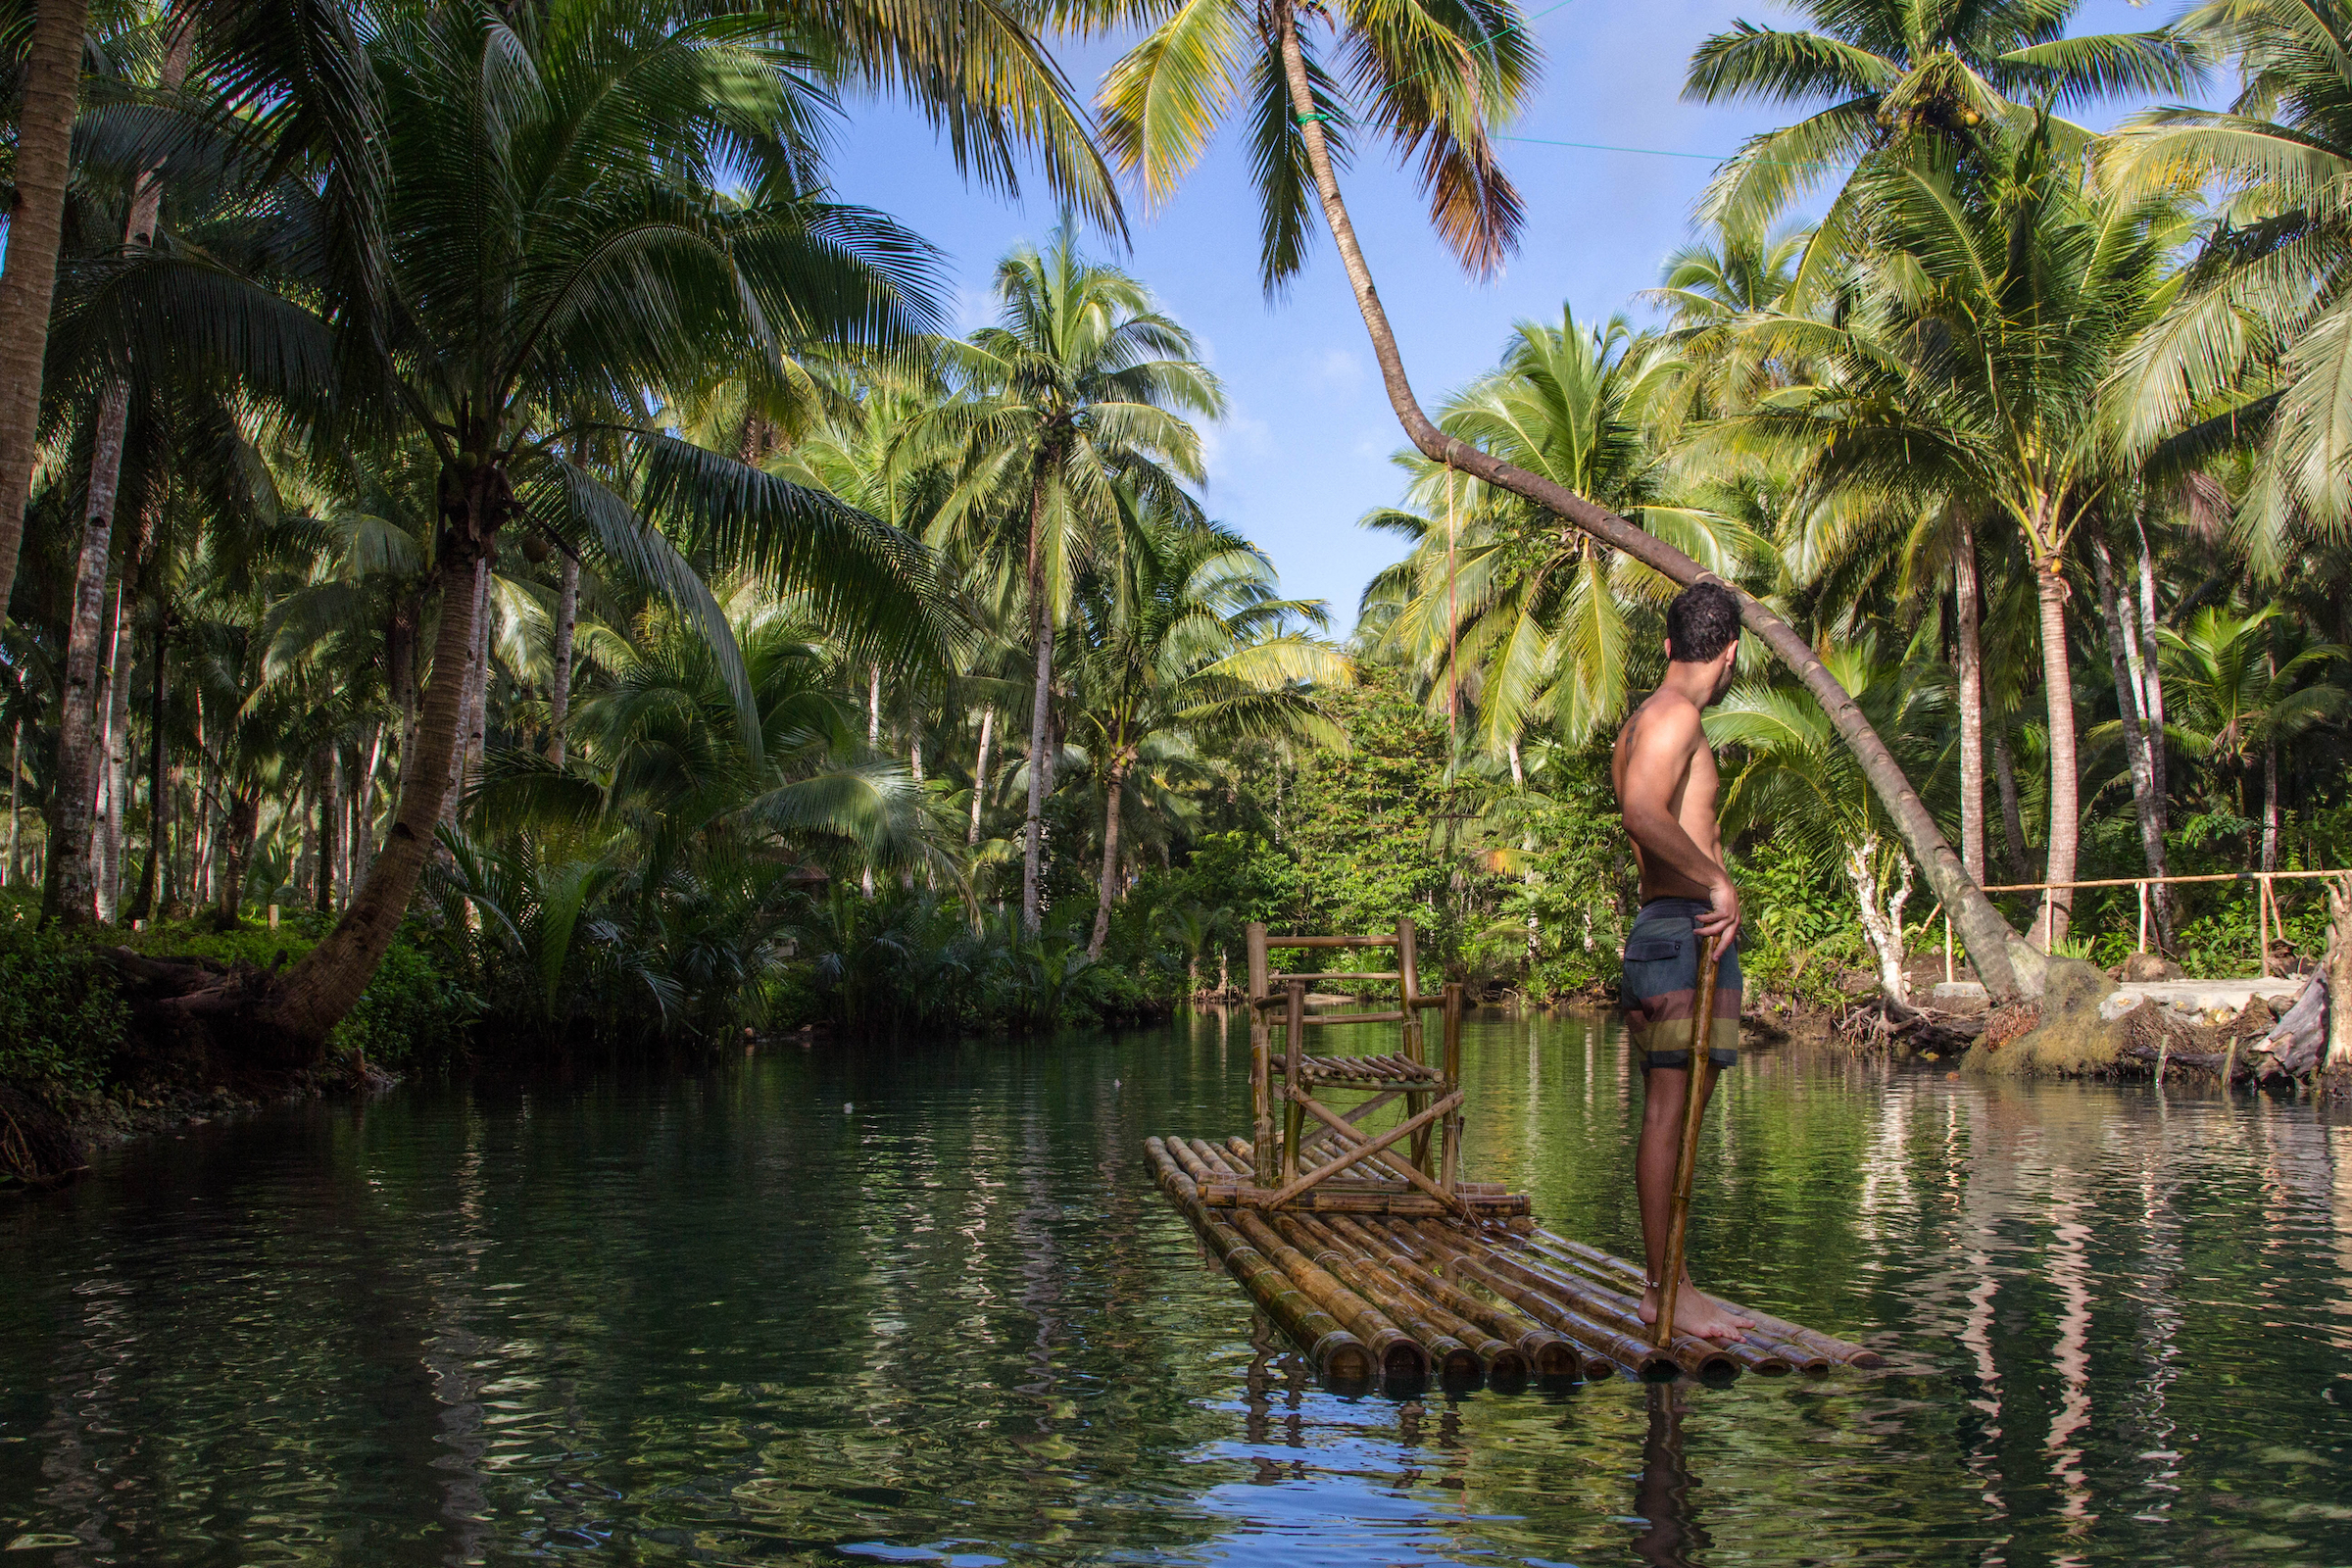 Siargao Sugba Lagoon, Magpupungko, Maasin Coconut Forest & River Day Tour | With Lunch